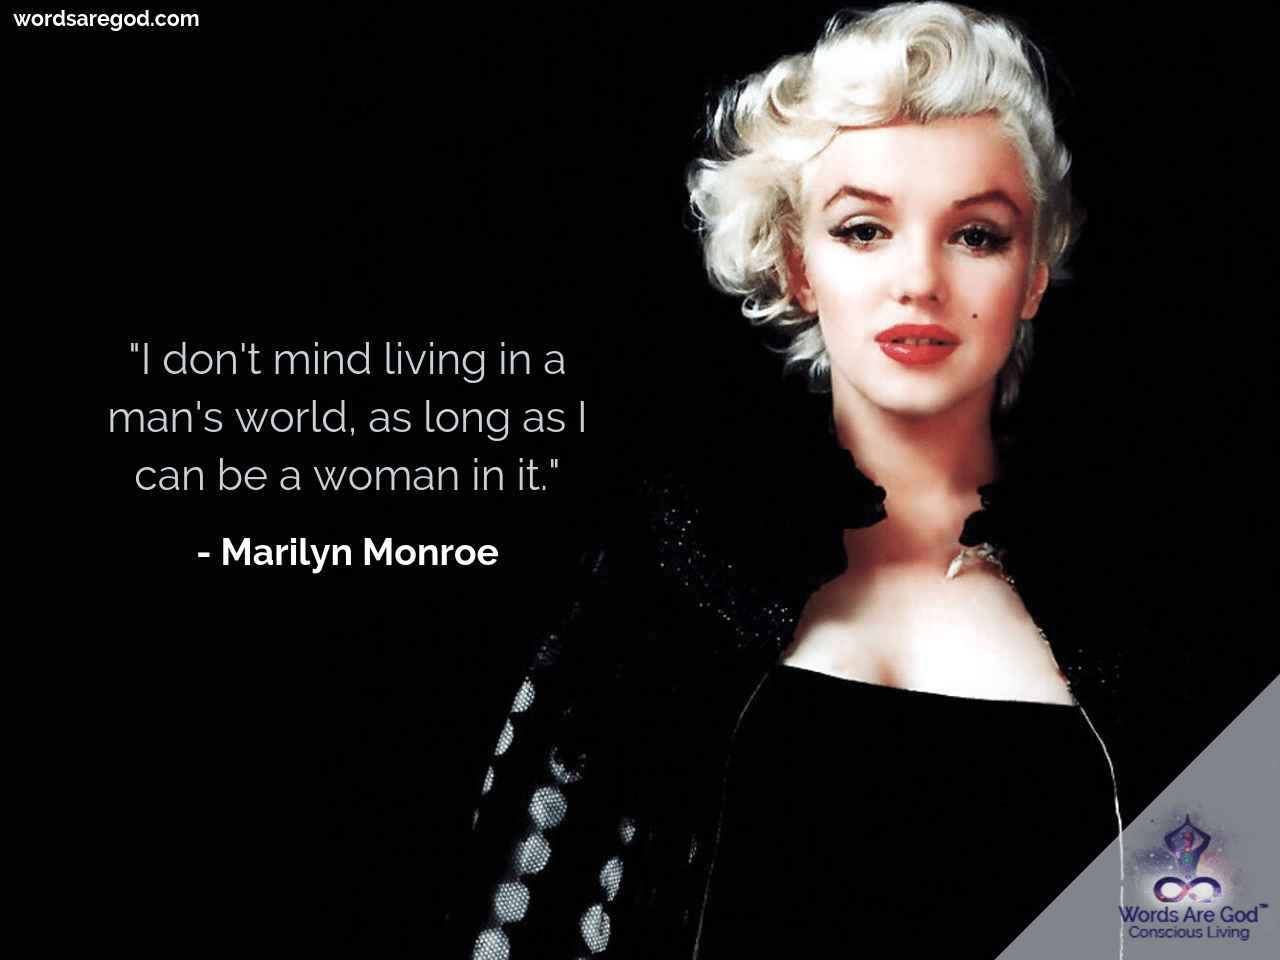 Marilyn Monroe Life Quote by Marilyn Monroe